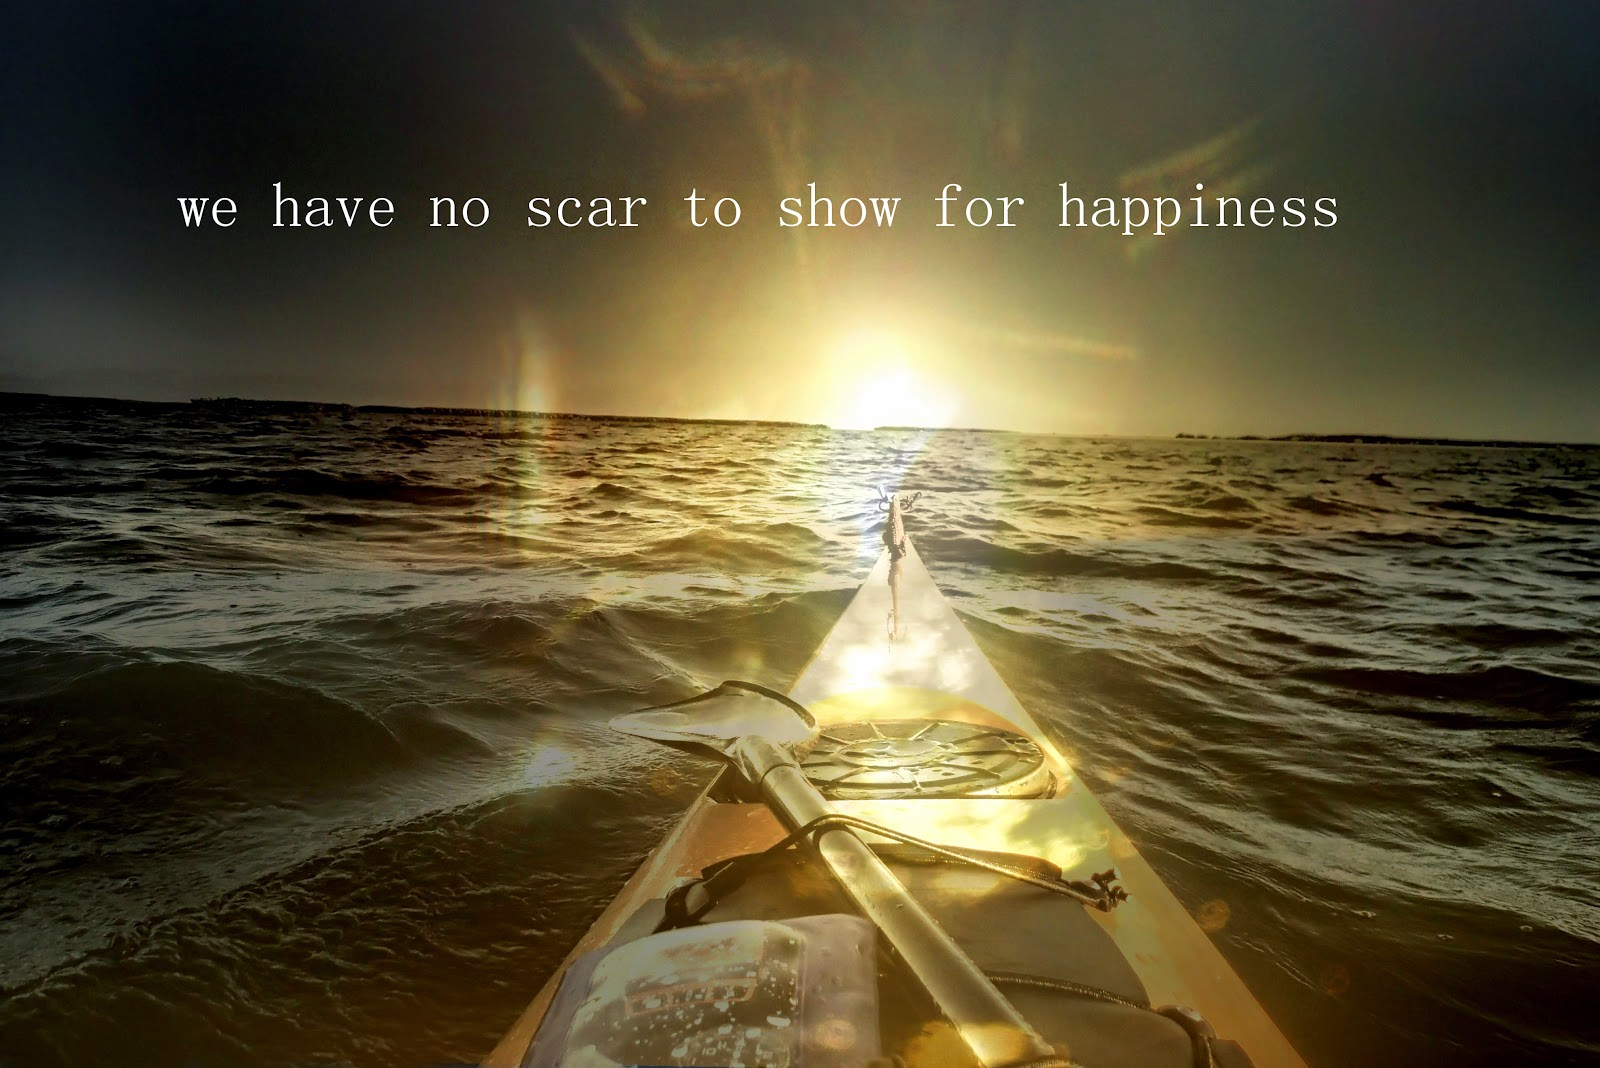 We have no scar to show for happiness - Everglades Challenge 2014